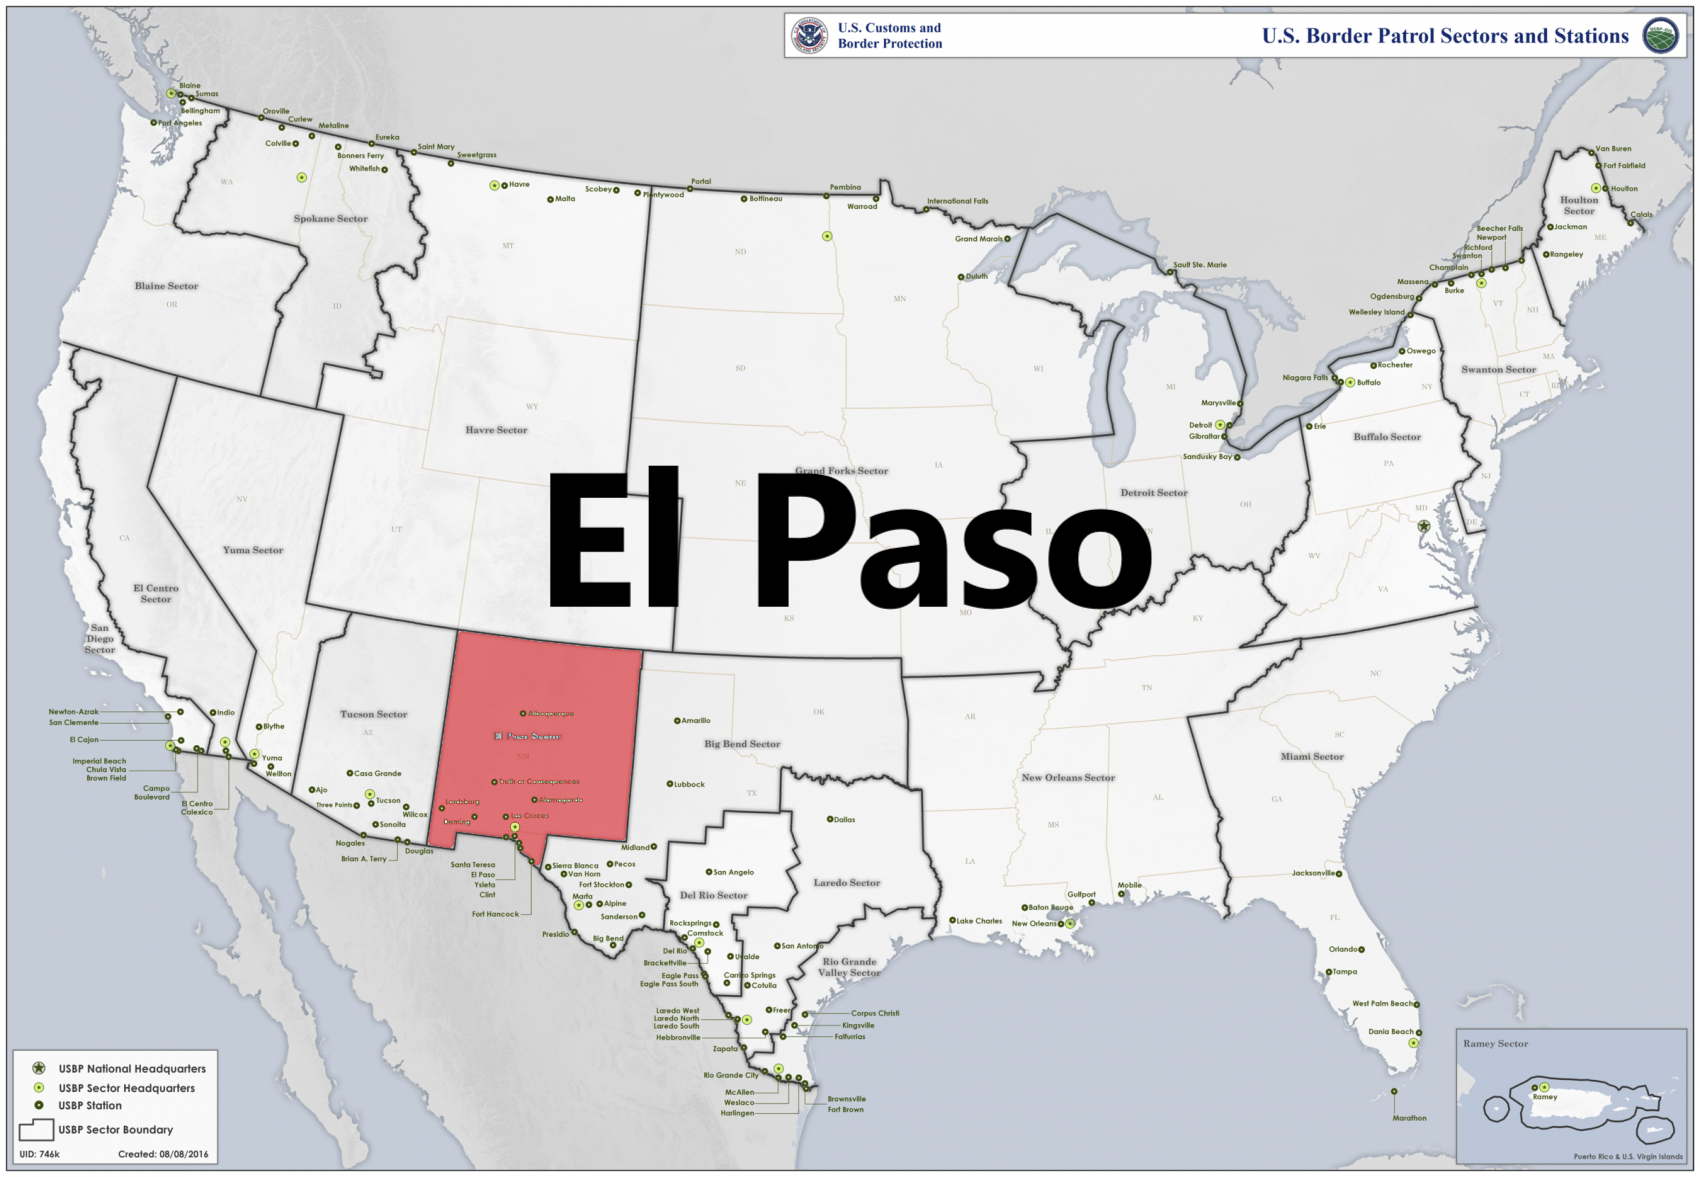 Border patrol sectors map - El Paso.png